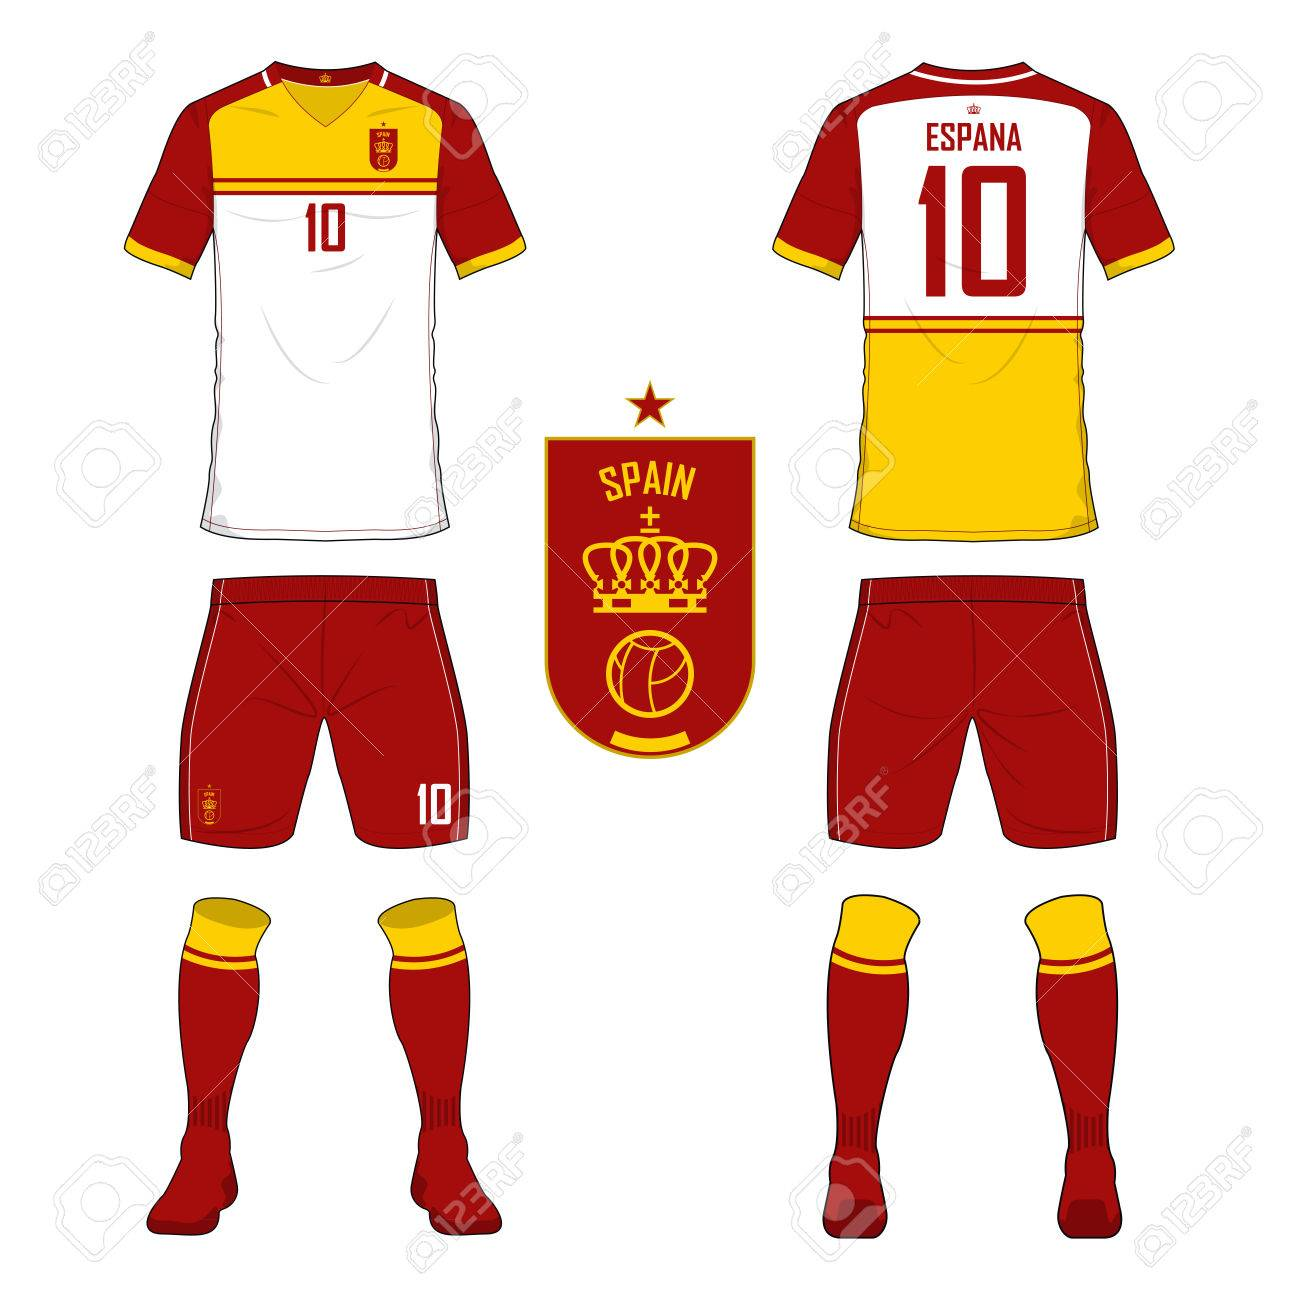 da5f45c538d ... set of soccer jersey or football kit template for spain national  football team. front and